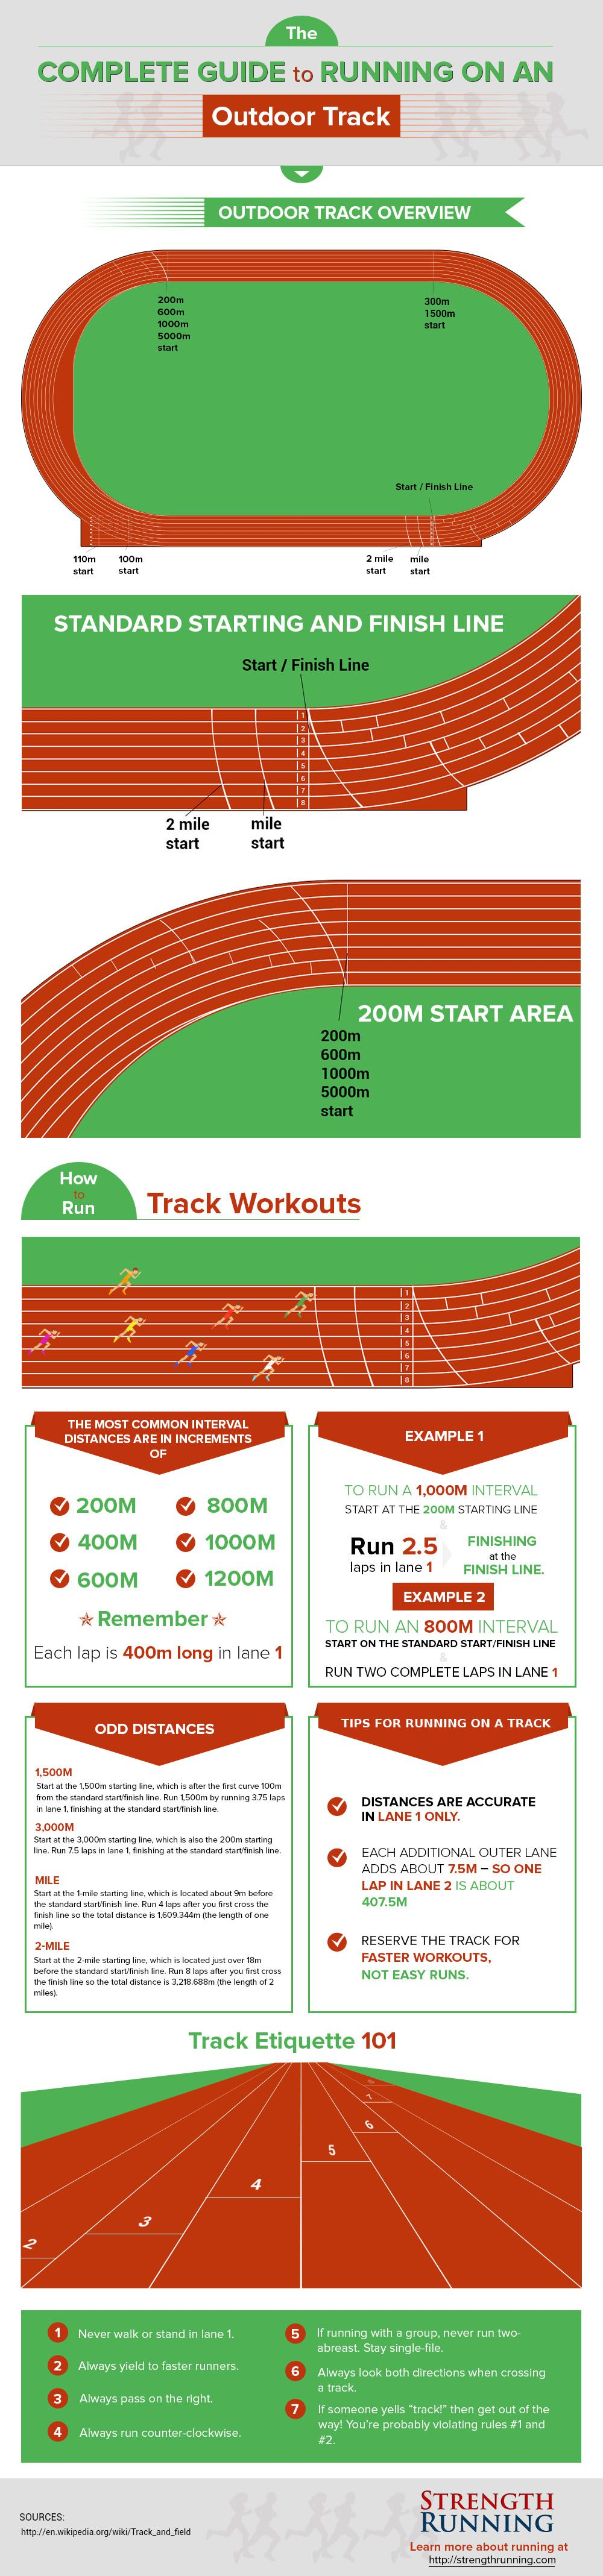 How To Run Track Workouts On A 400m Outdoor Track Infographic Track Workout Track And Field Running Workouts